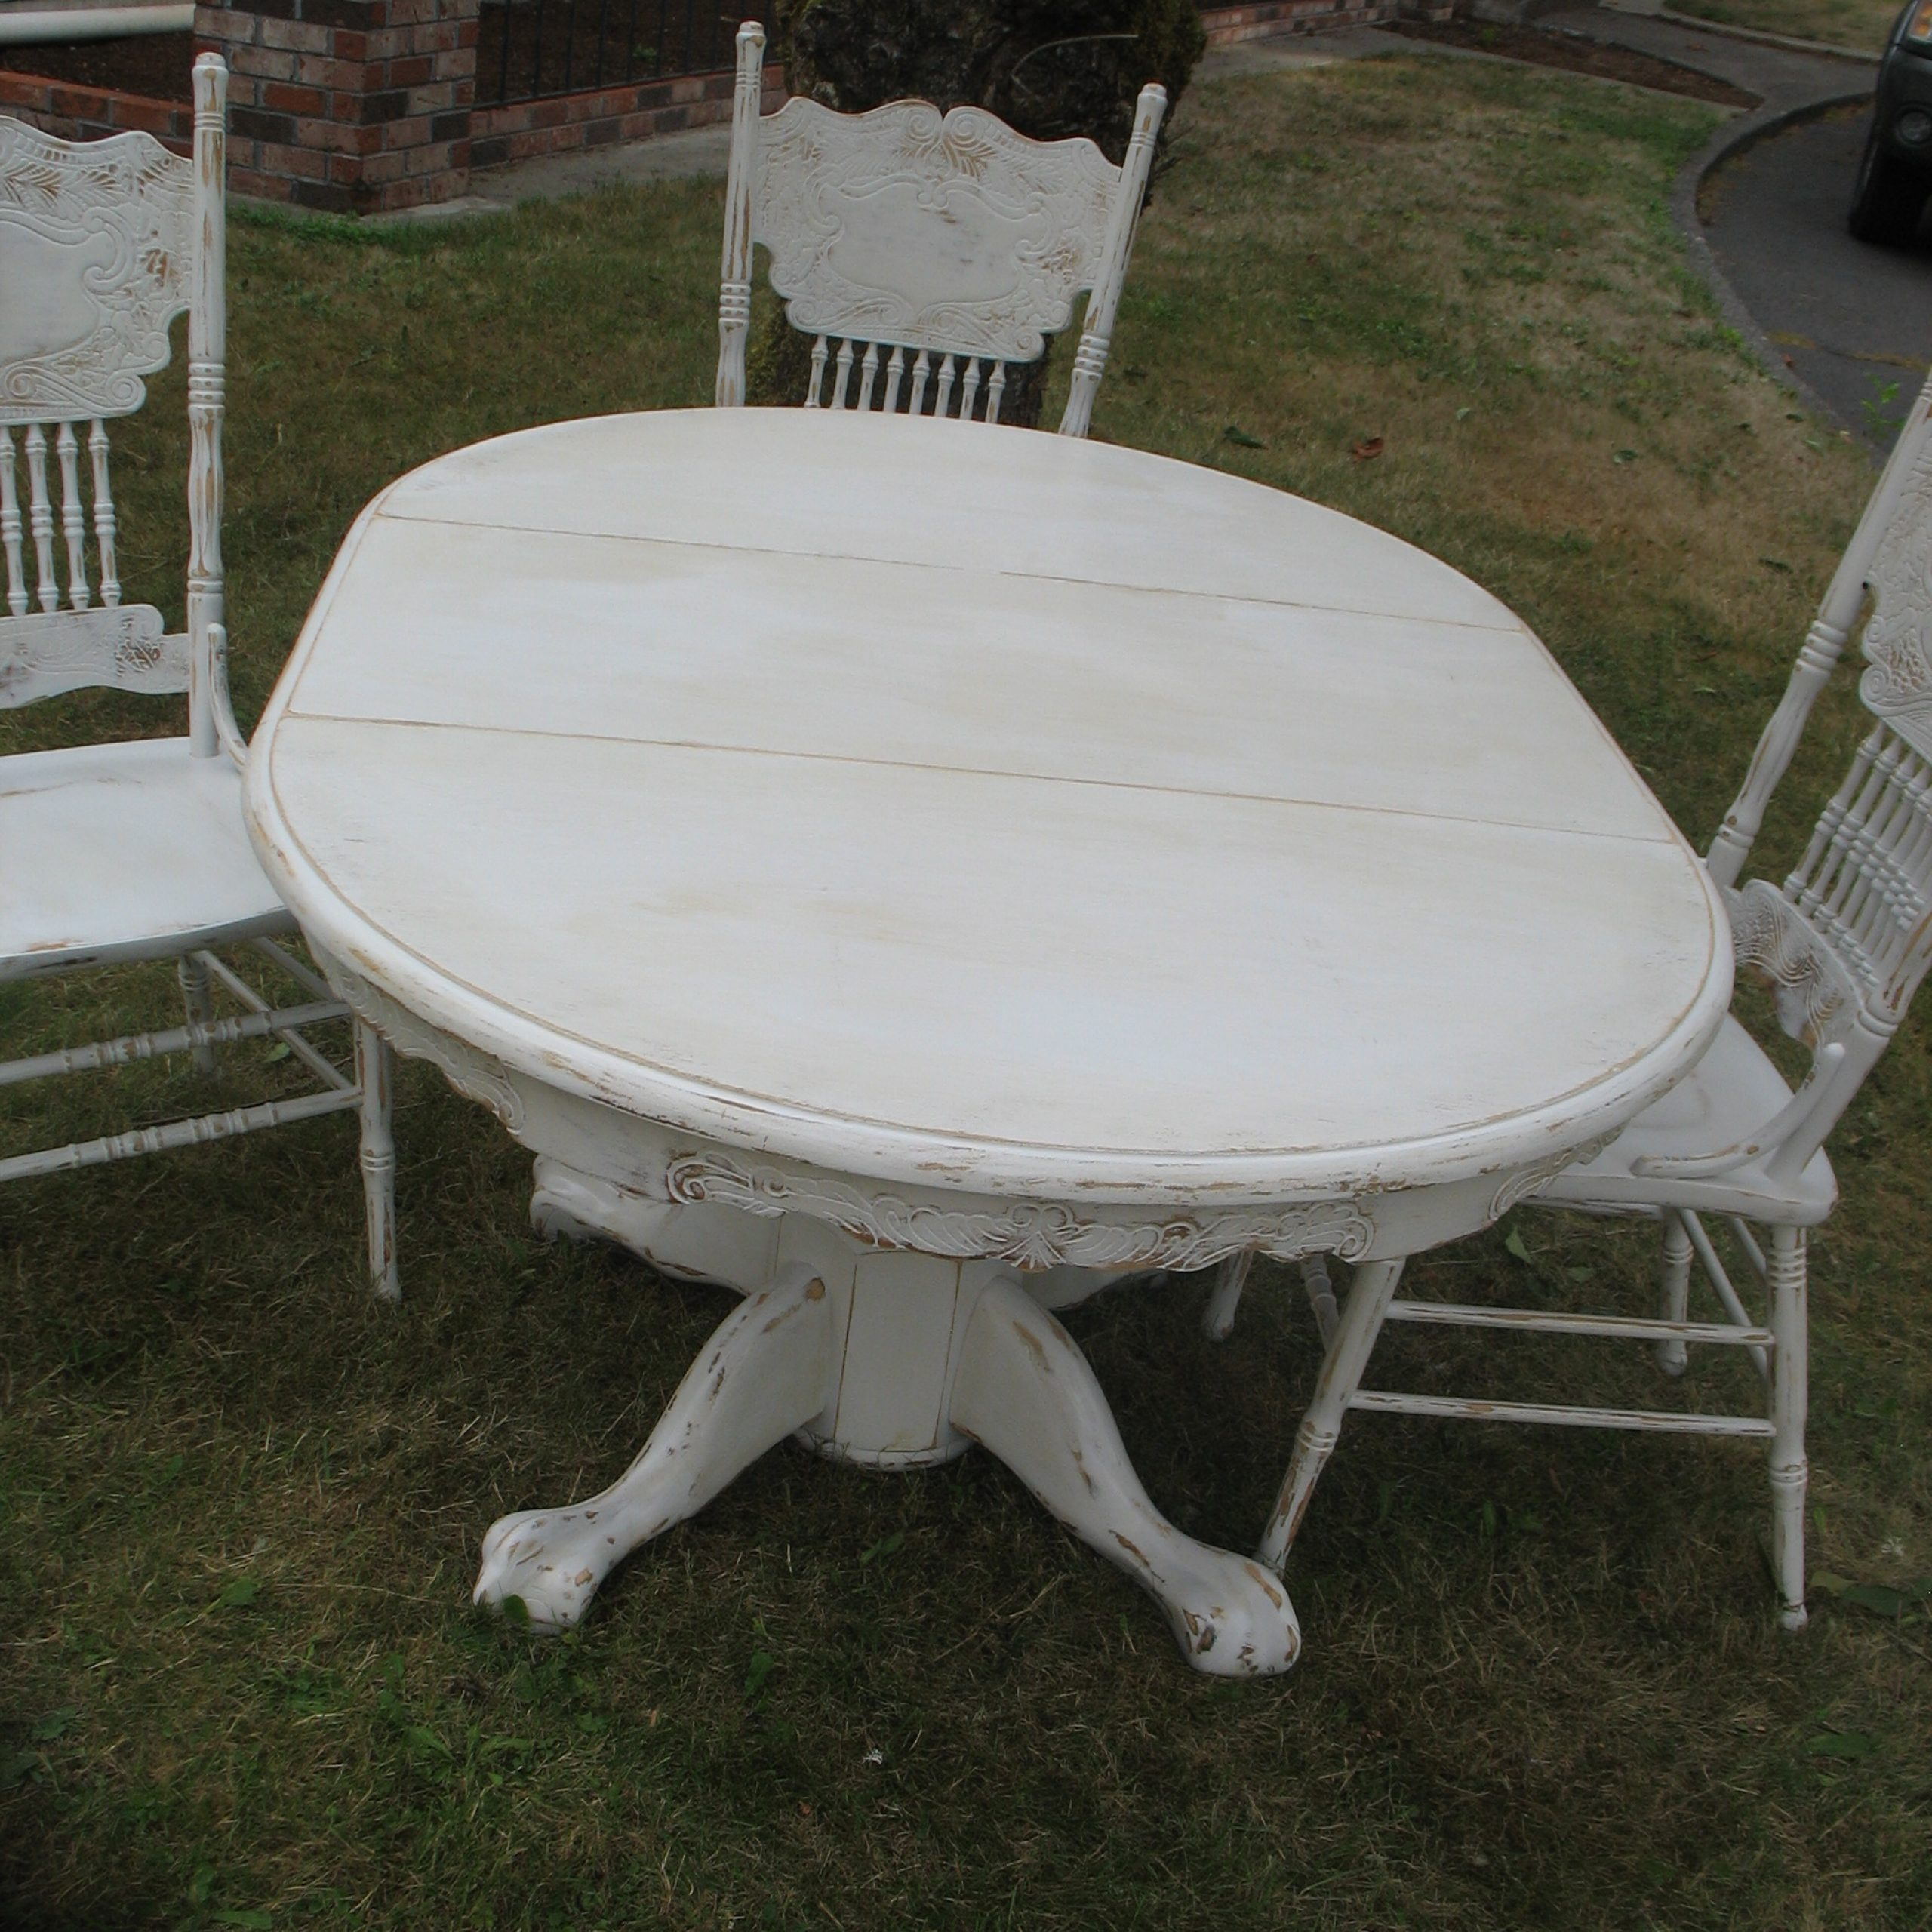 Benchwright Round Pedestal Dining Tables Inside Most Recent Distressed Dining Set Ladybird39S Vintage Benchwright (View 17 of 25)